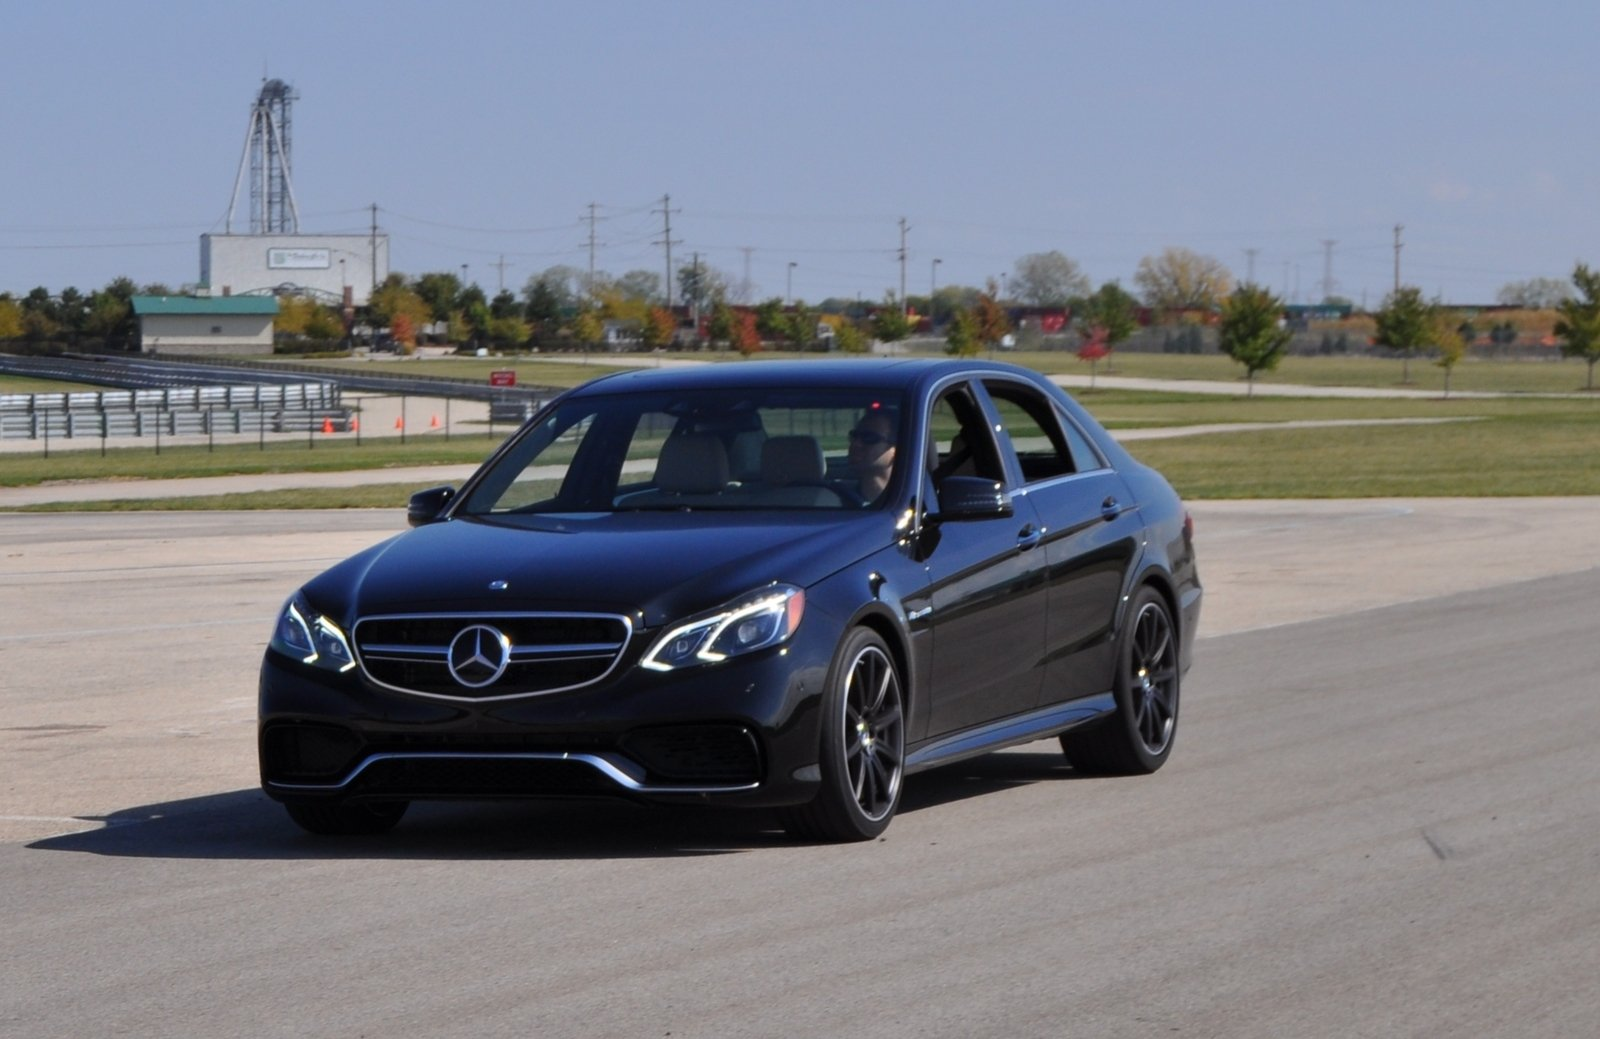 2014 mercedes benz e63 amg s model driven picture for Mercedes benz e63 amg 2014